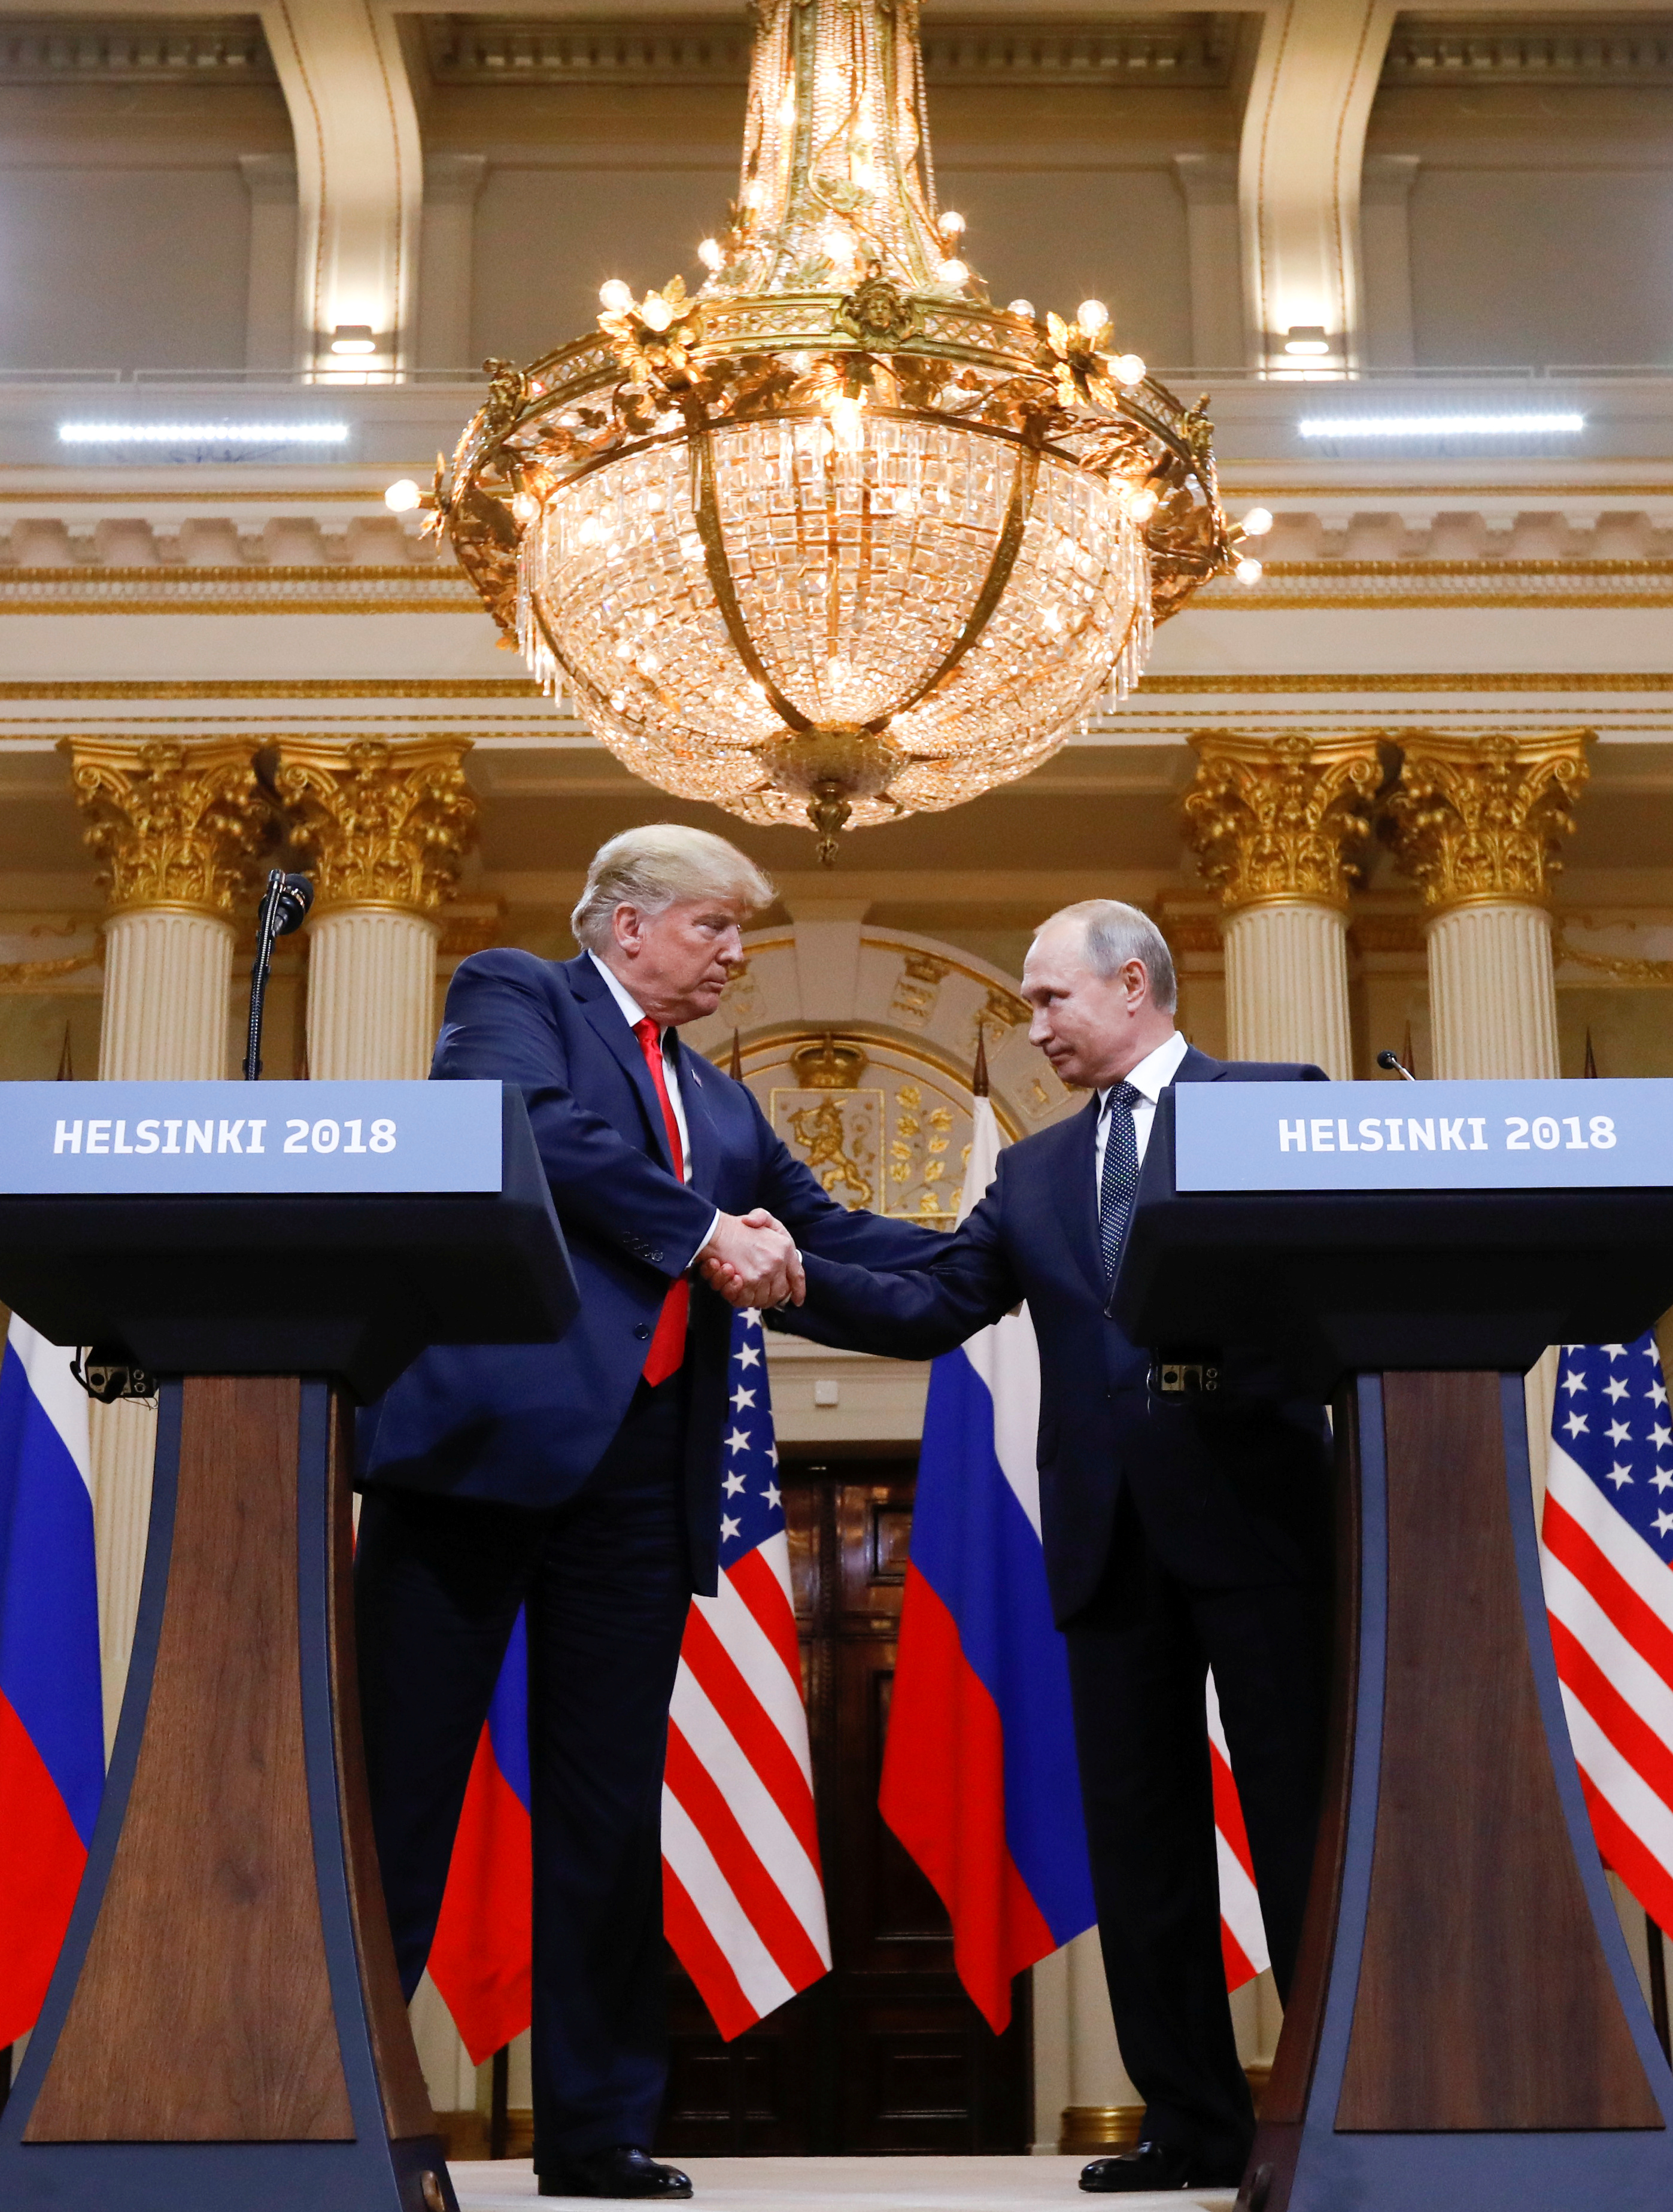 U.S. President Donald Trump and Russia's President Vladimir Putin shake hands during a joint news conference after their meeting in Helsinki, Finland, July 16, 2018. REUTERS/Kevin Lamarque - RC181F828BC0